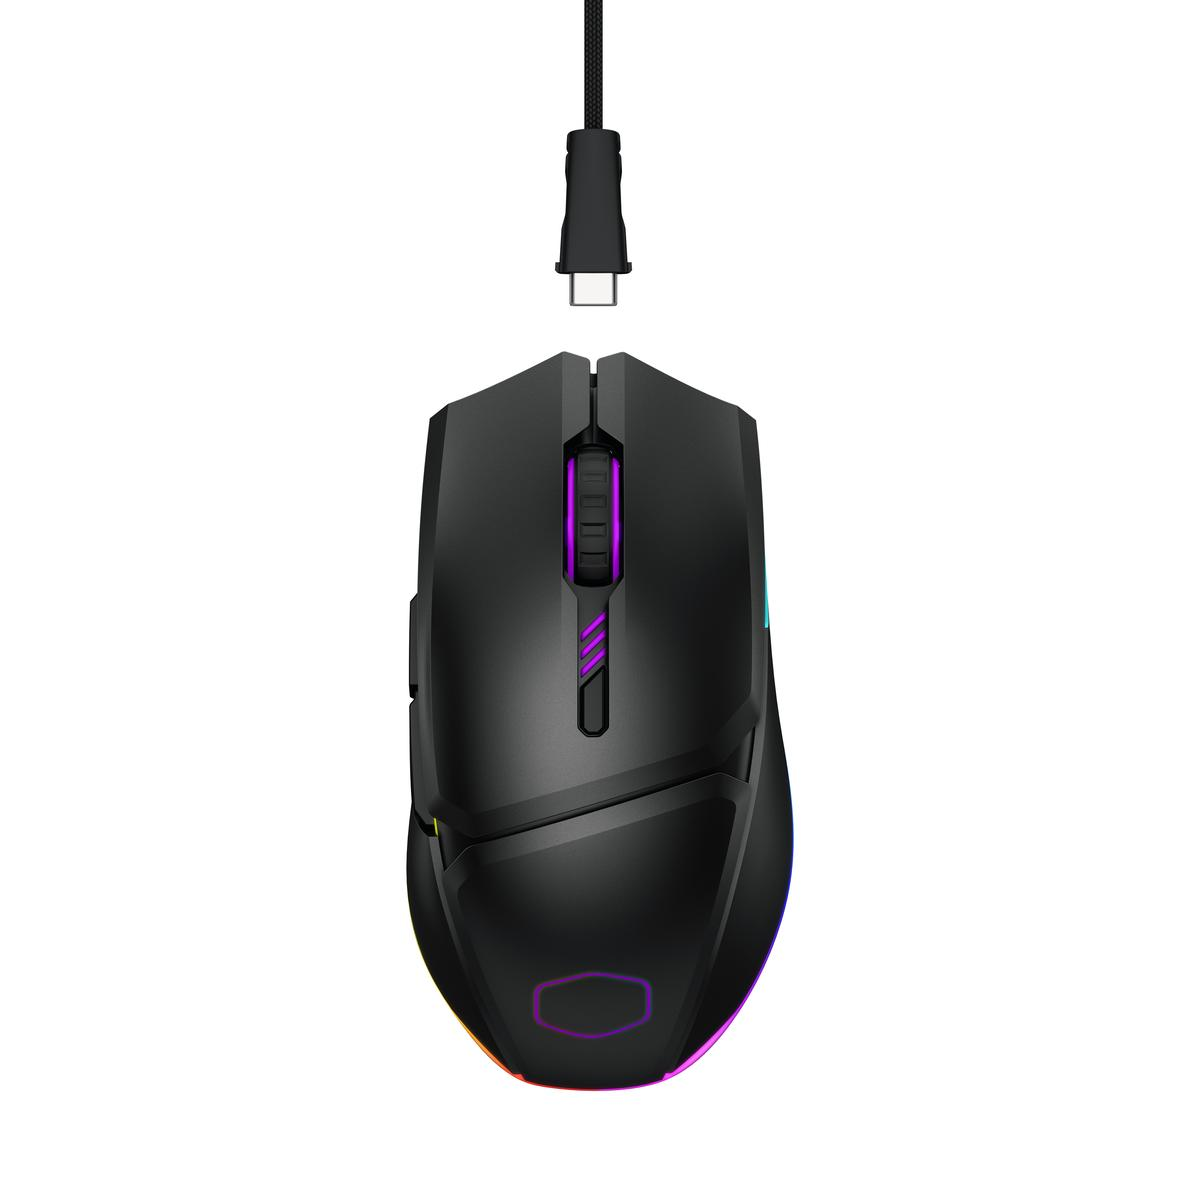 Cooler Master MM831 Wireless Optical Mouse